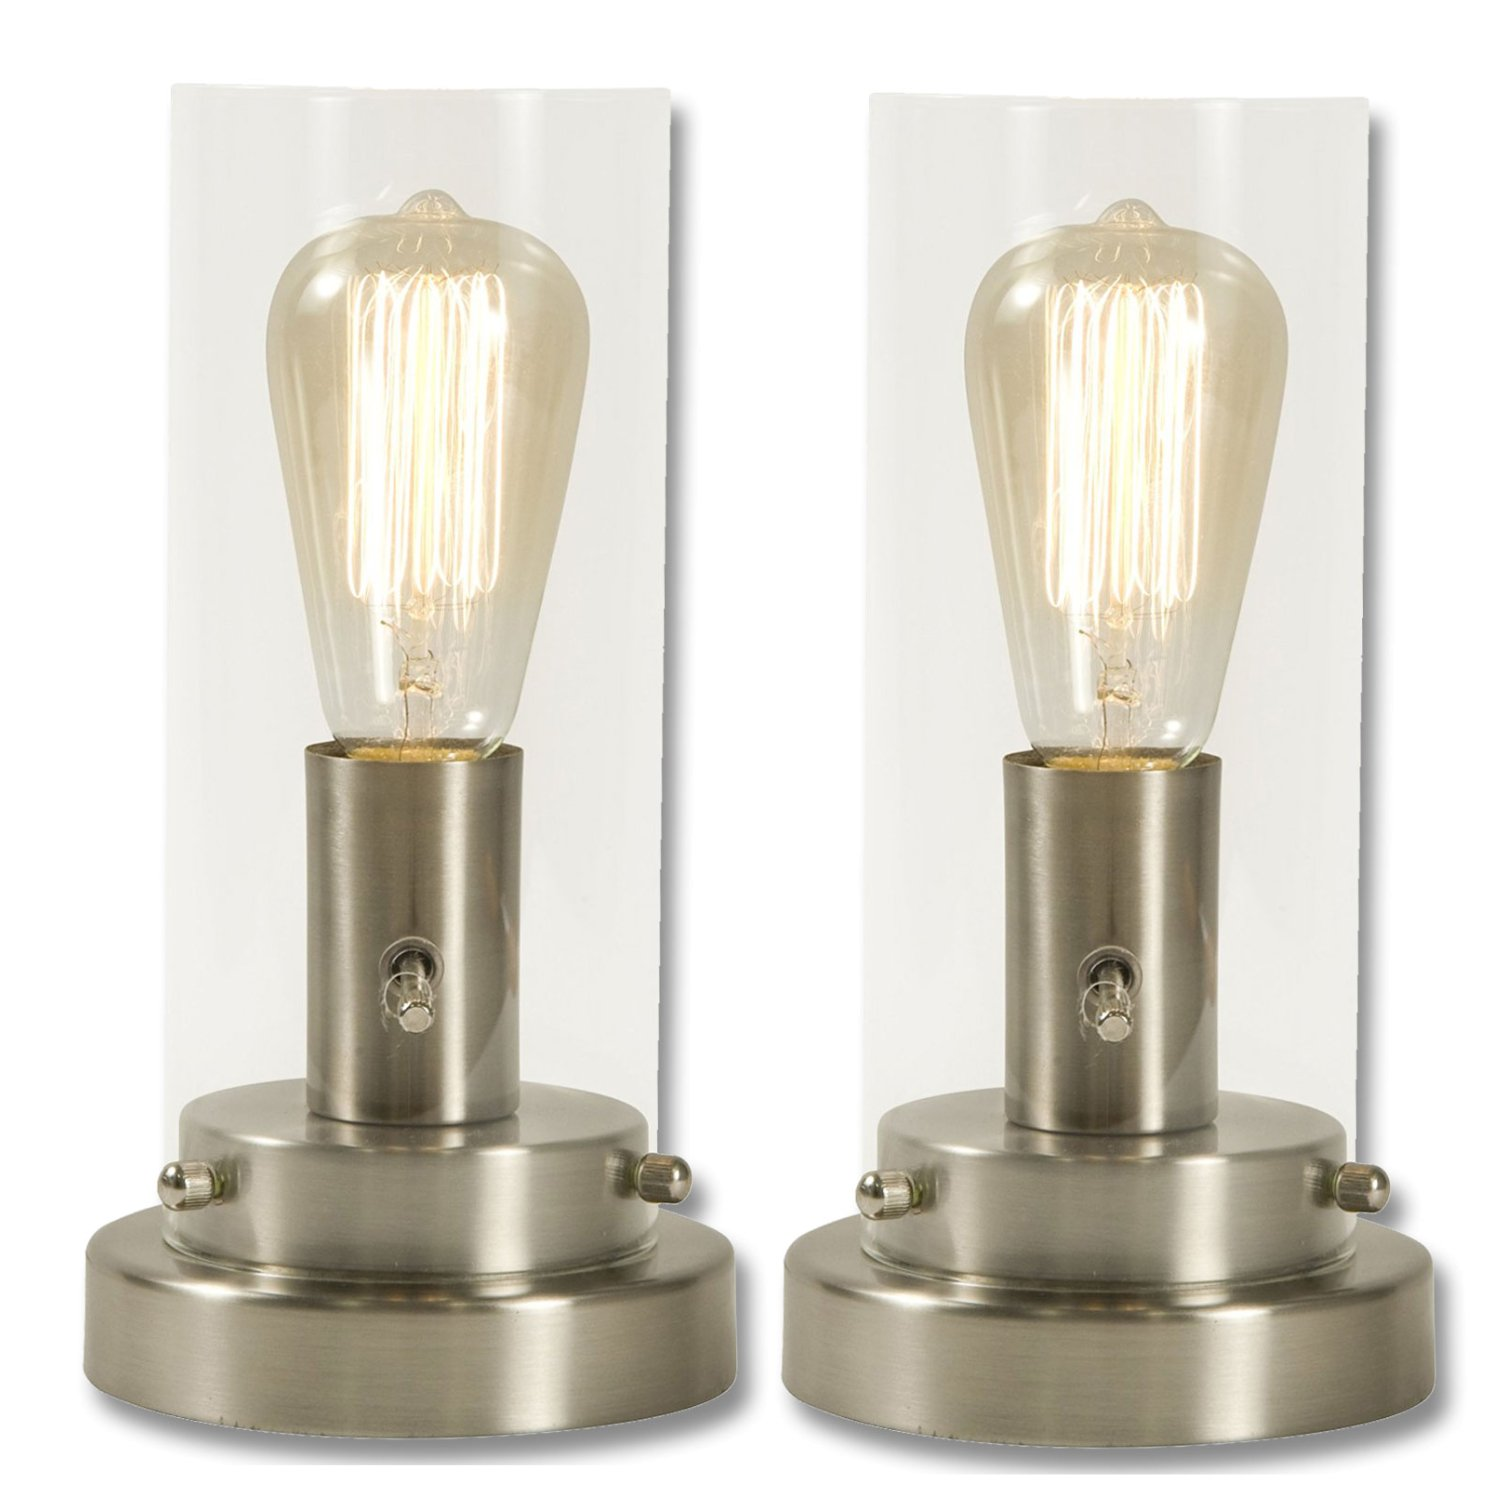 Cylinder Glass and Steel Table Lamp with Vintage Edison Bulb (Brushed Nickel (2 Pack))